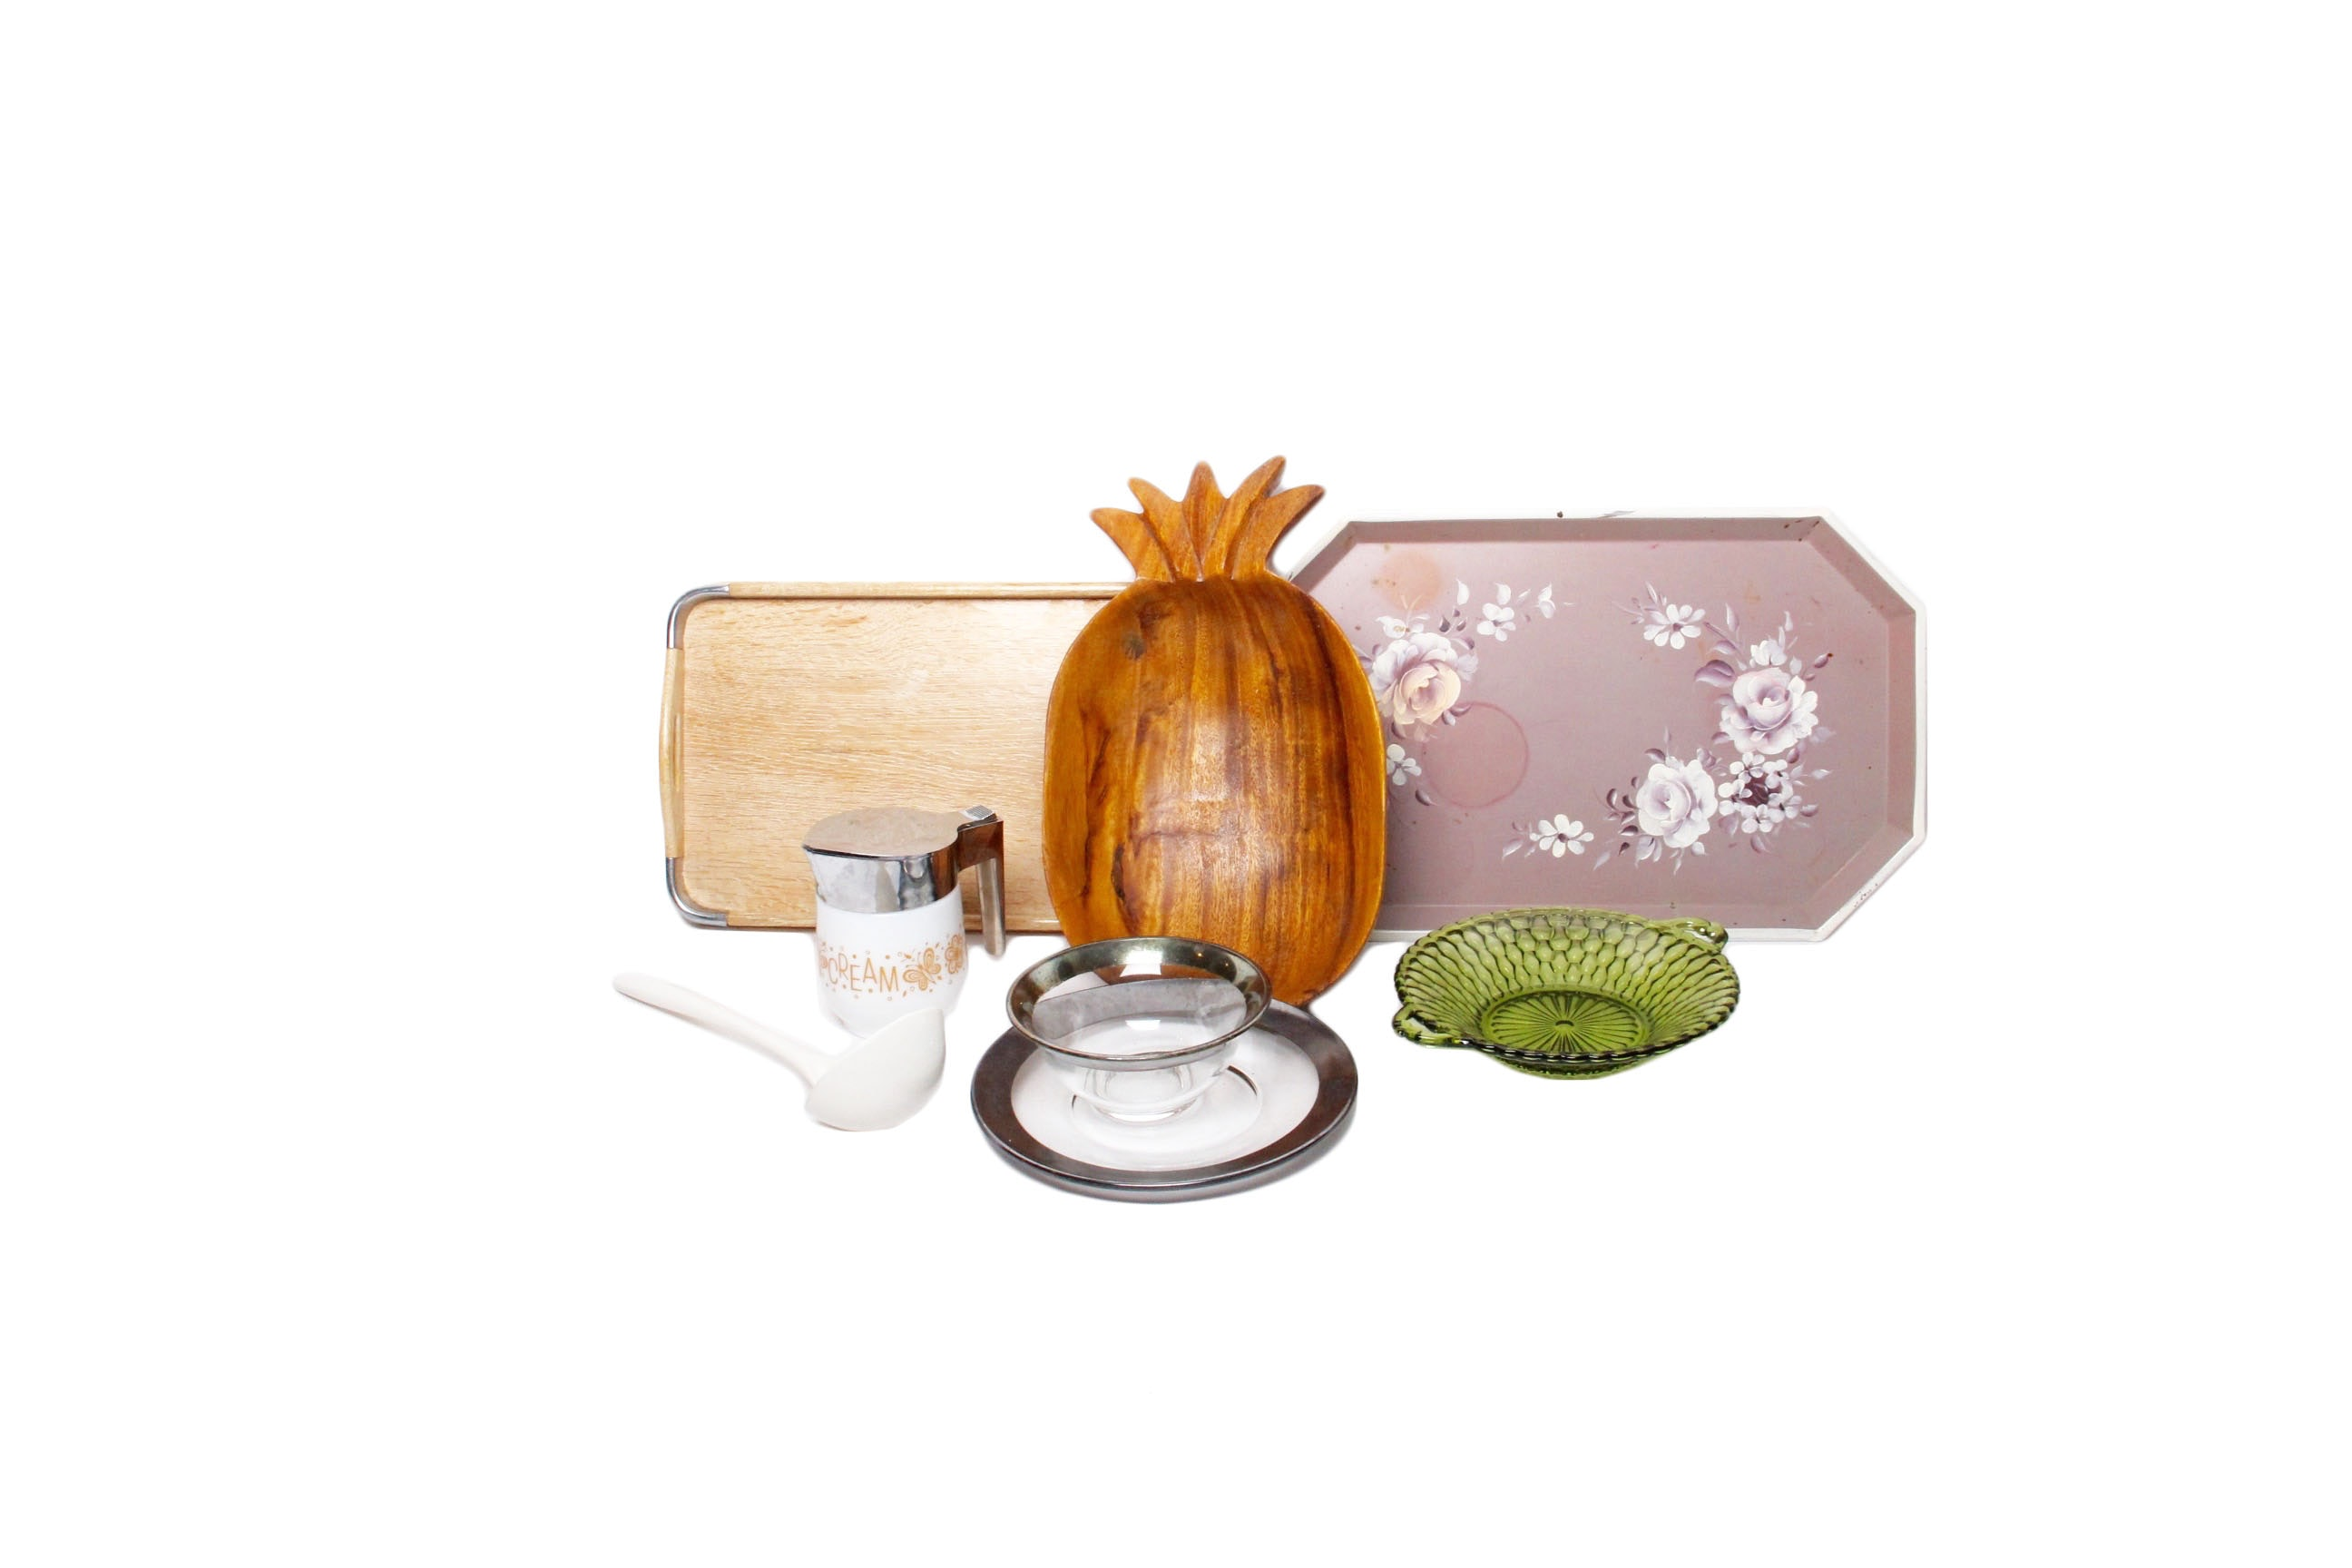 Kitchen Decoration Things: Collection Of Vintage Kitchen Décor : EBTH